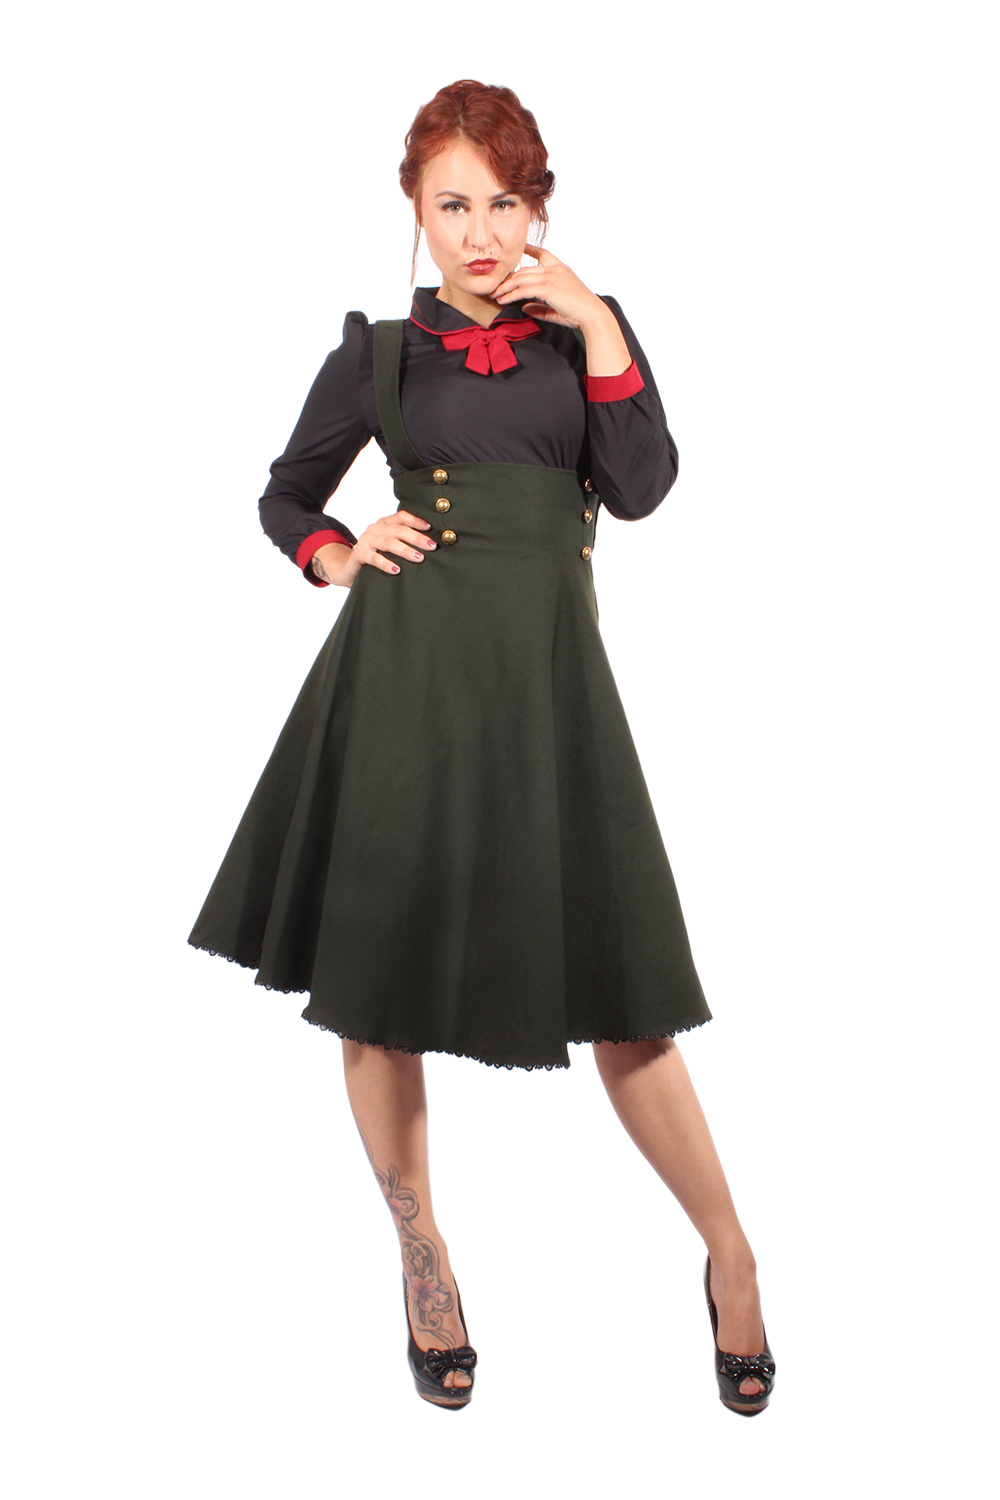 UNIFORM retro rockabilly Hosenträger SWING ROCK Tellerrock oliv